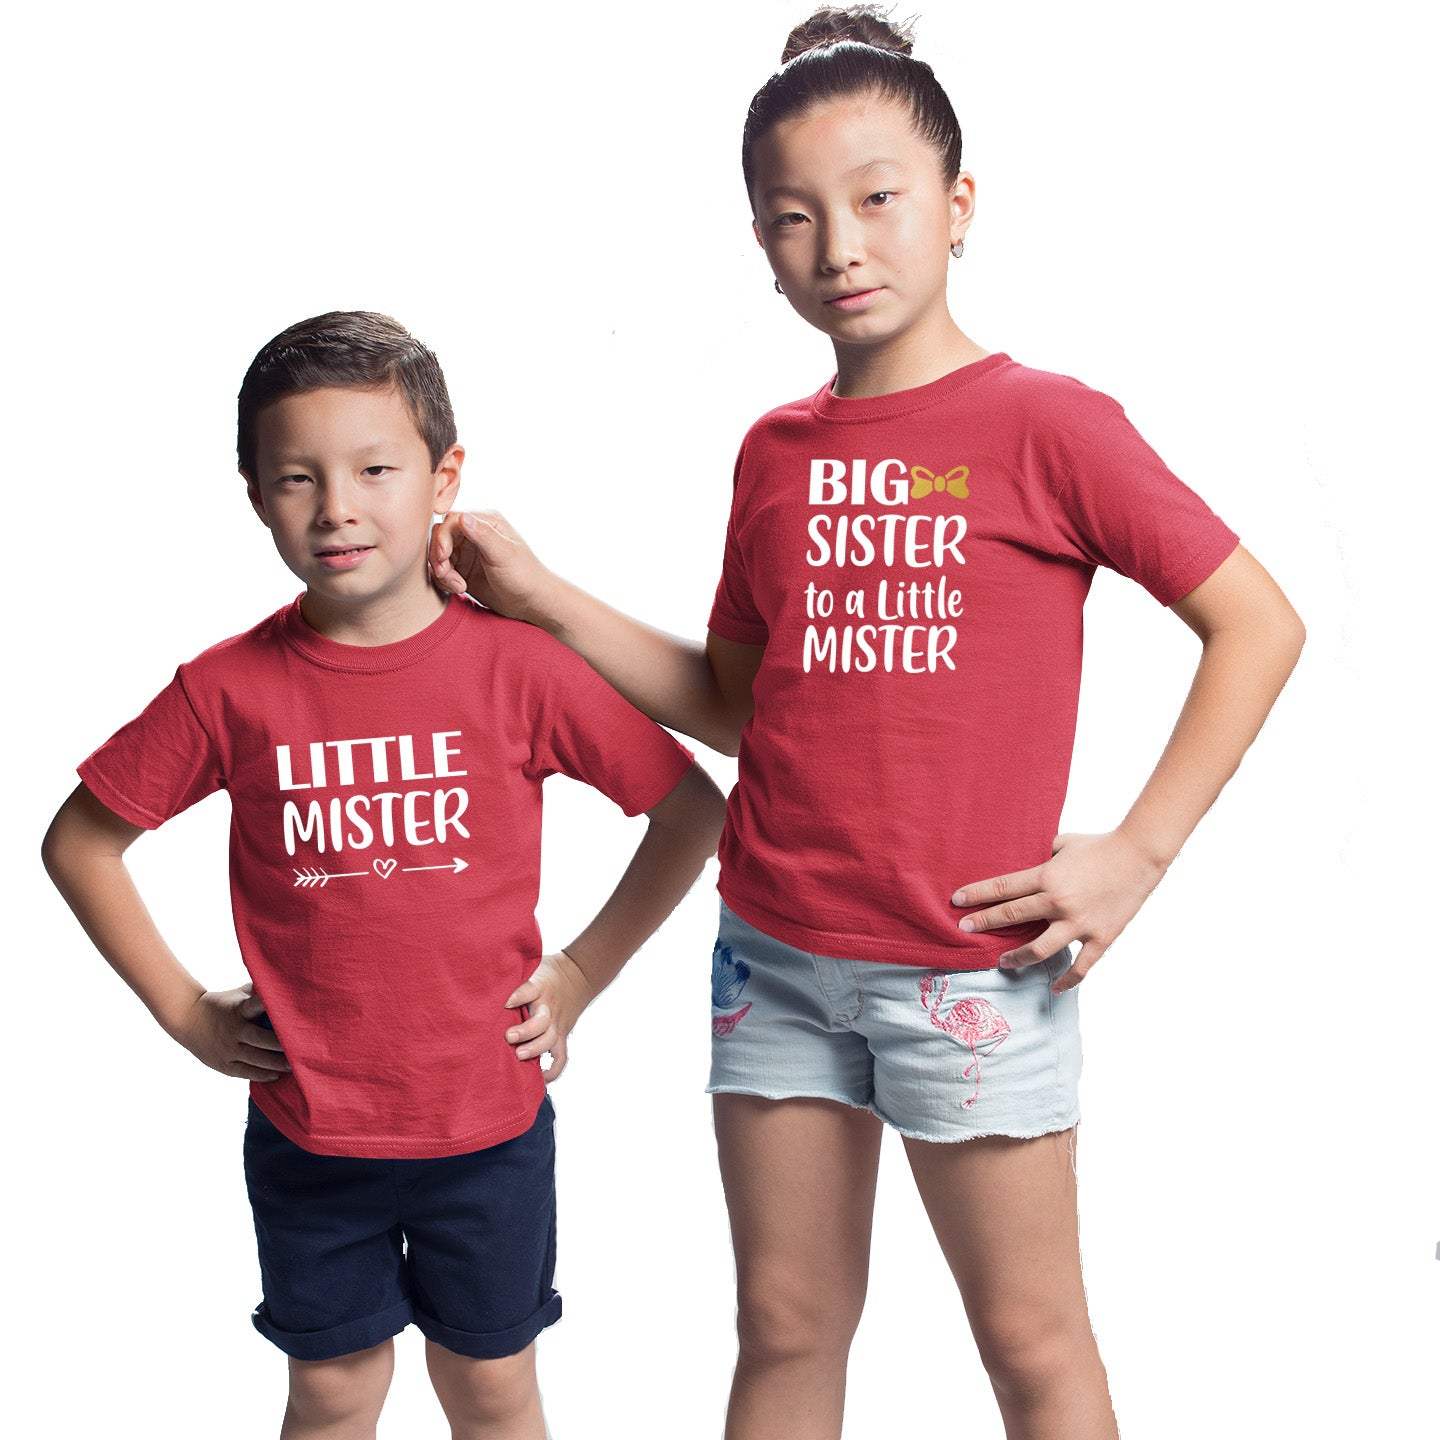 Sprinklecart Little Mister Big Sister to A Little Mister Printed Matching Cotton T Shirt Combo for Kids (Red)